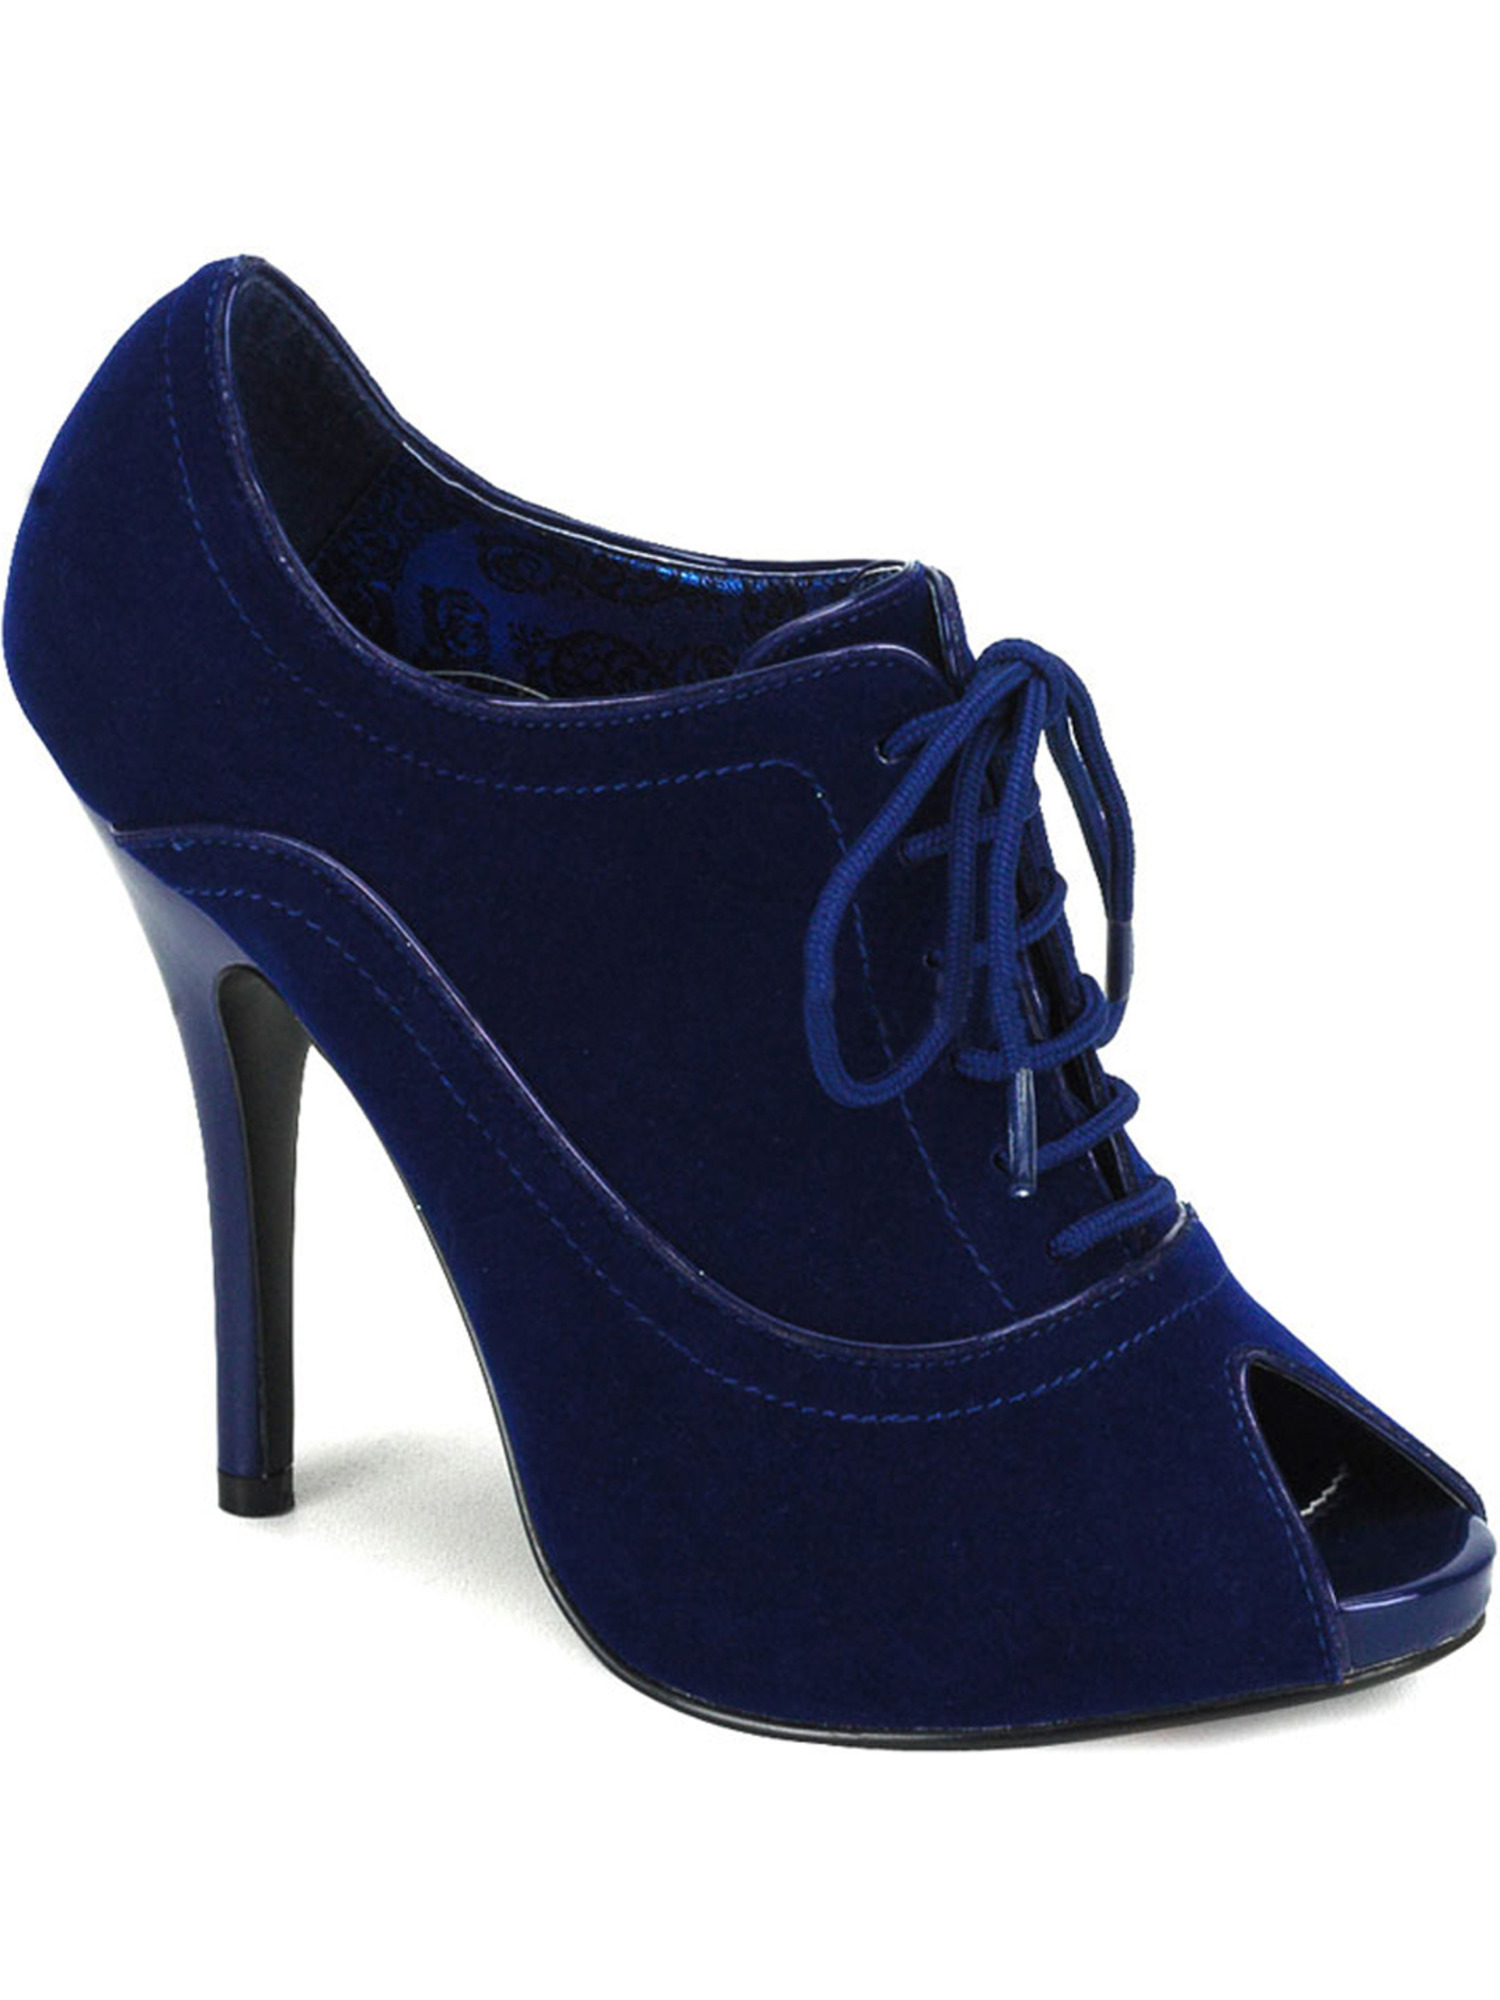 Womens Blue Velvet Peep Toe Ankle Booties with 4.75 Inch Heel and Lace Up Front